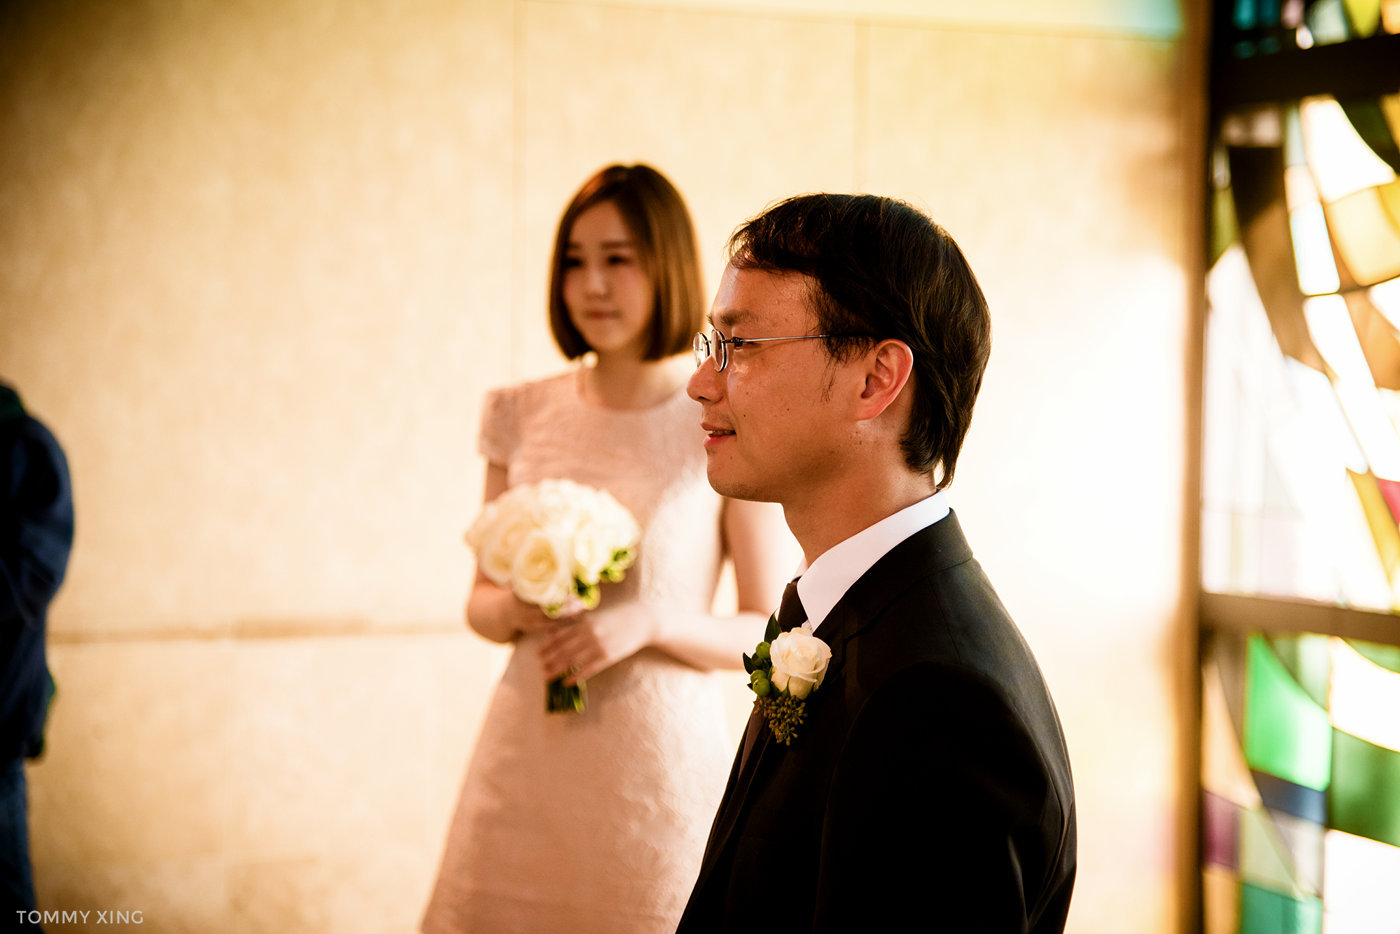 Qinglu Meng & Daozheng Chen Wedding Slideshow-114-E.JPG